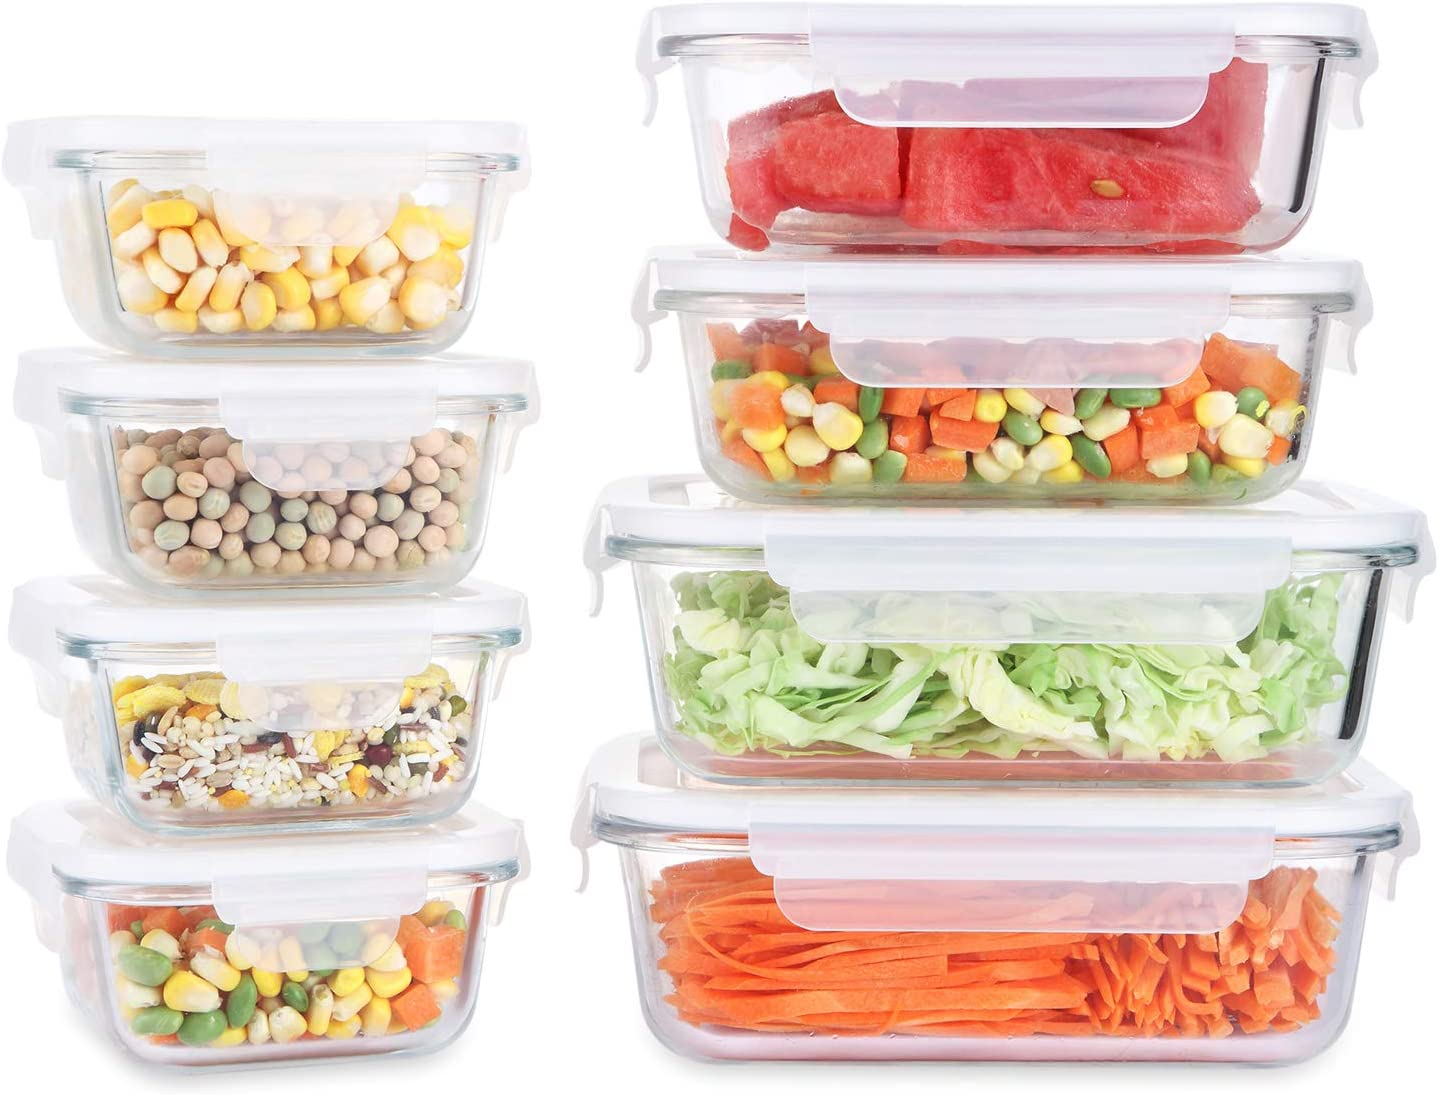 Fresh Friend 8 Pack Glass Food Storage Containers with Lids Airtight BPA Free, Leakproof Lunch Containers, Stackable Kitchen Freezer Containers for Food Meal Prep, Christmas Gift